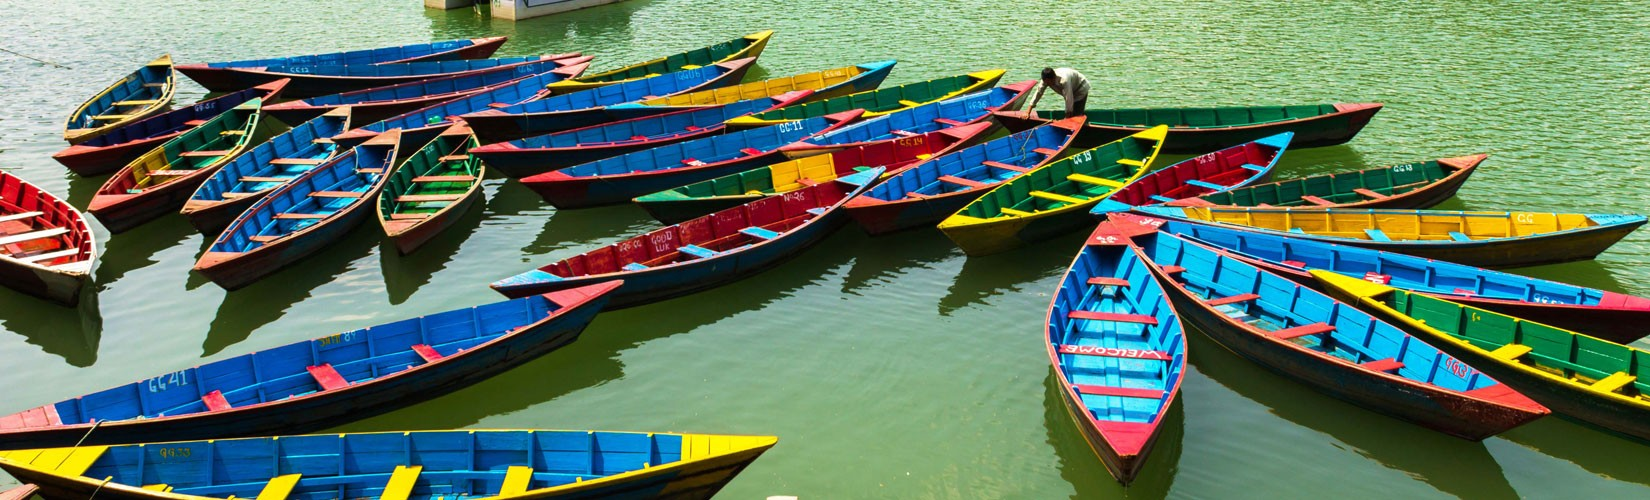 Pokhara is a place that will quench your thirst of seeing mountains from close and enjoy lakes so that you may completely immerse in it.